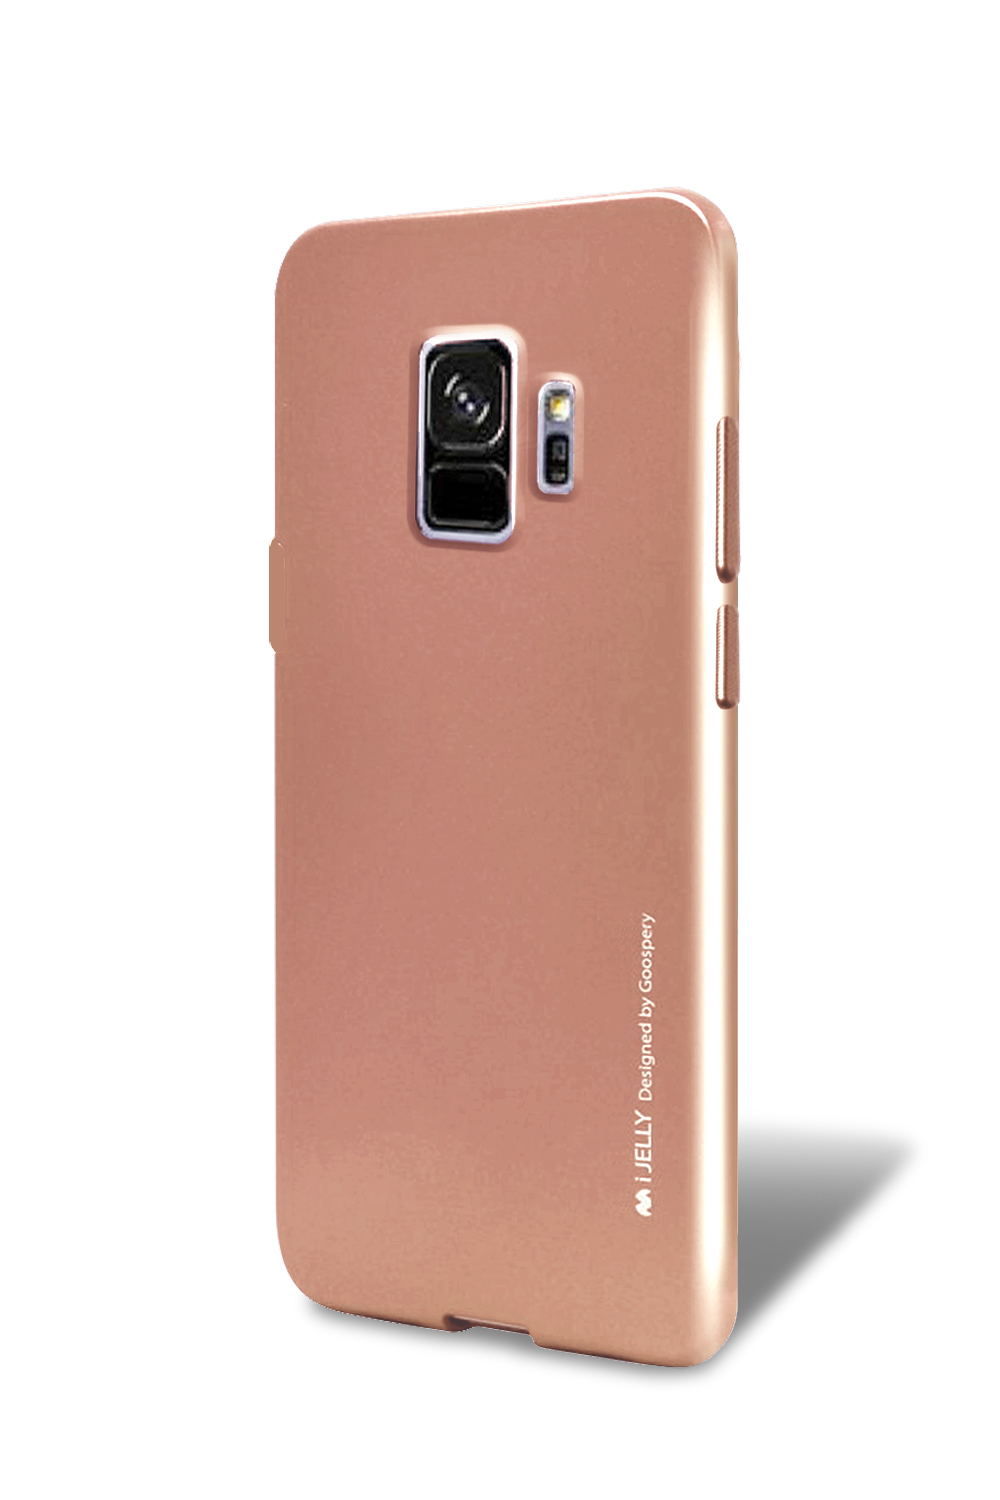 Goospery-i-Jelly-Soft-Clear-Rubber-Case-For-Samsung-Galaxy-S8-S8-Plus-Note-8-S9